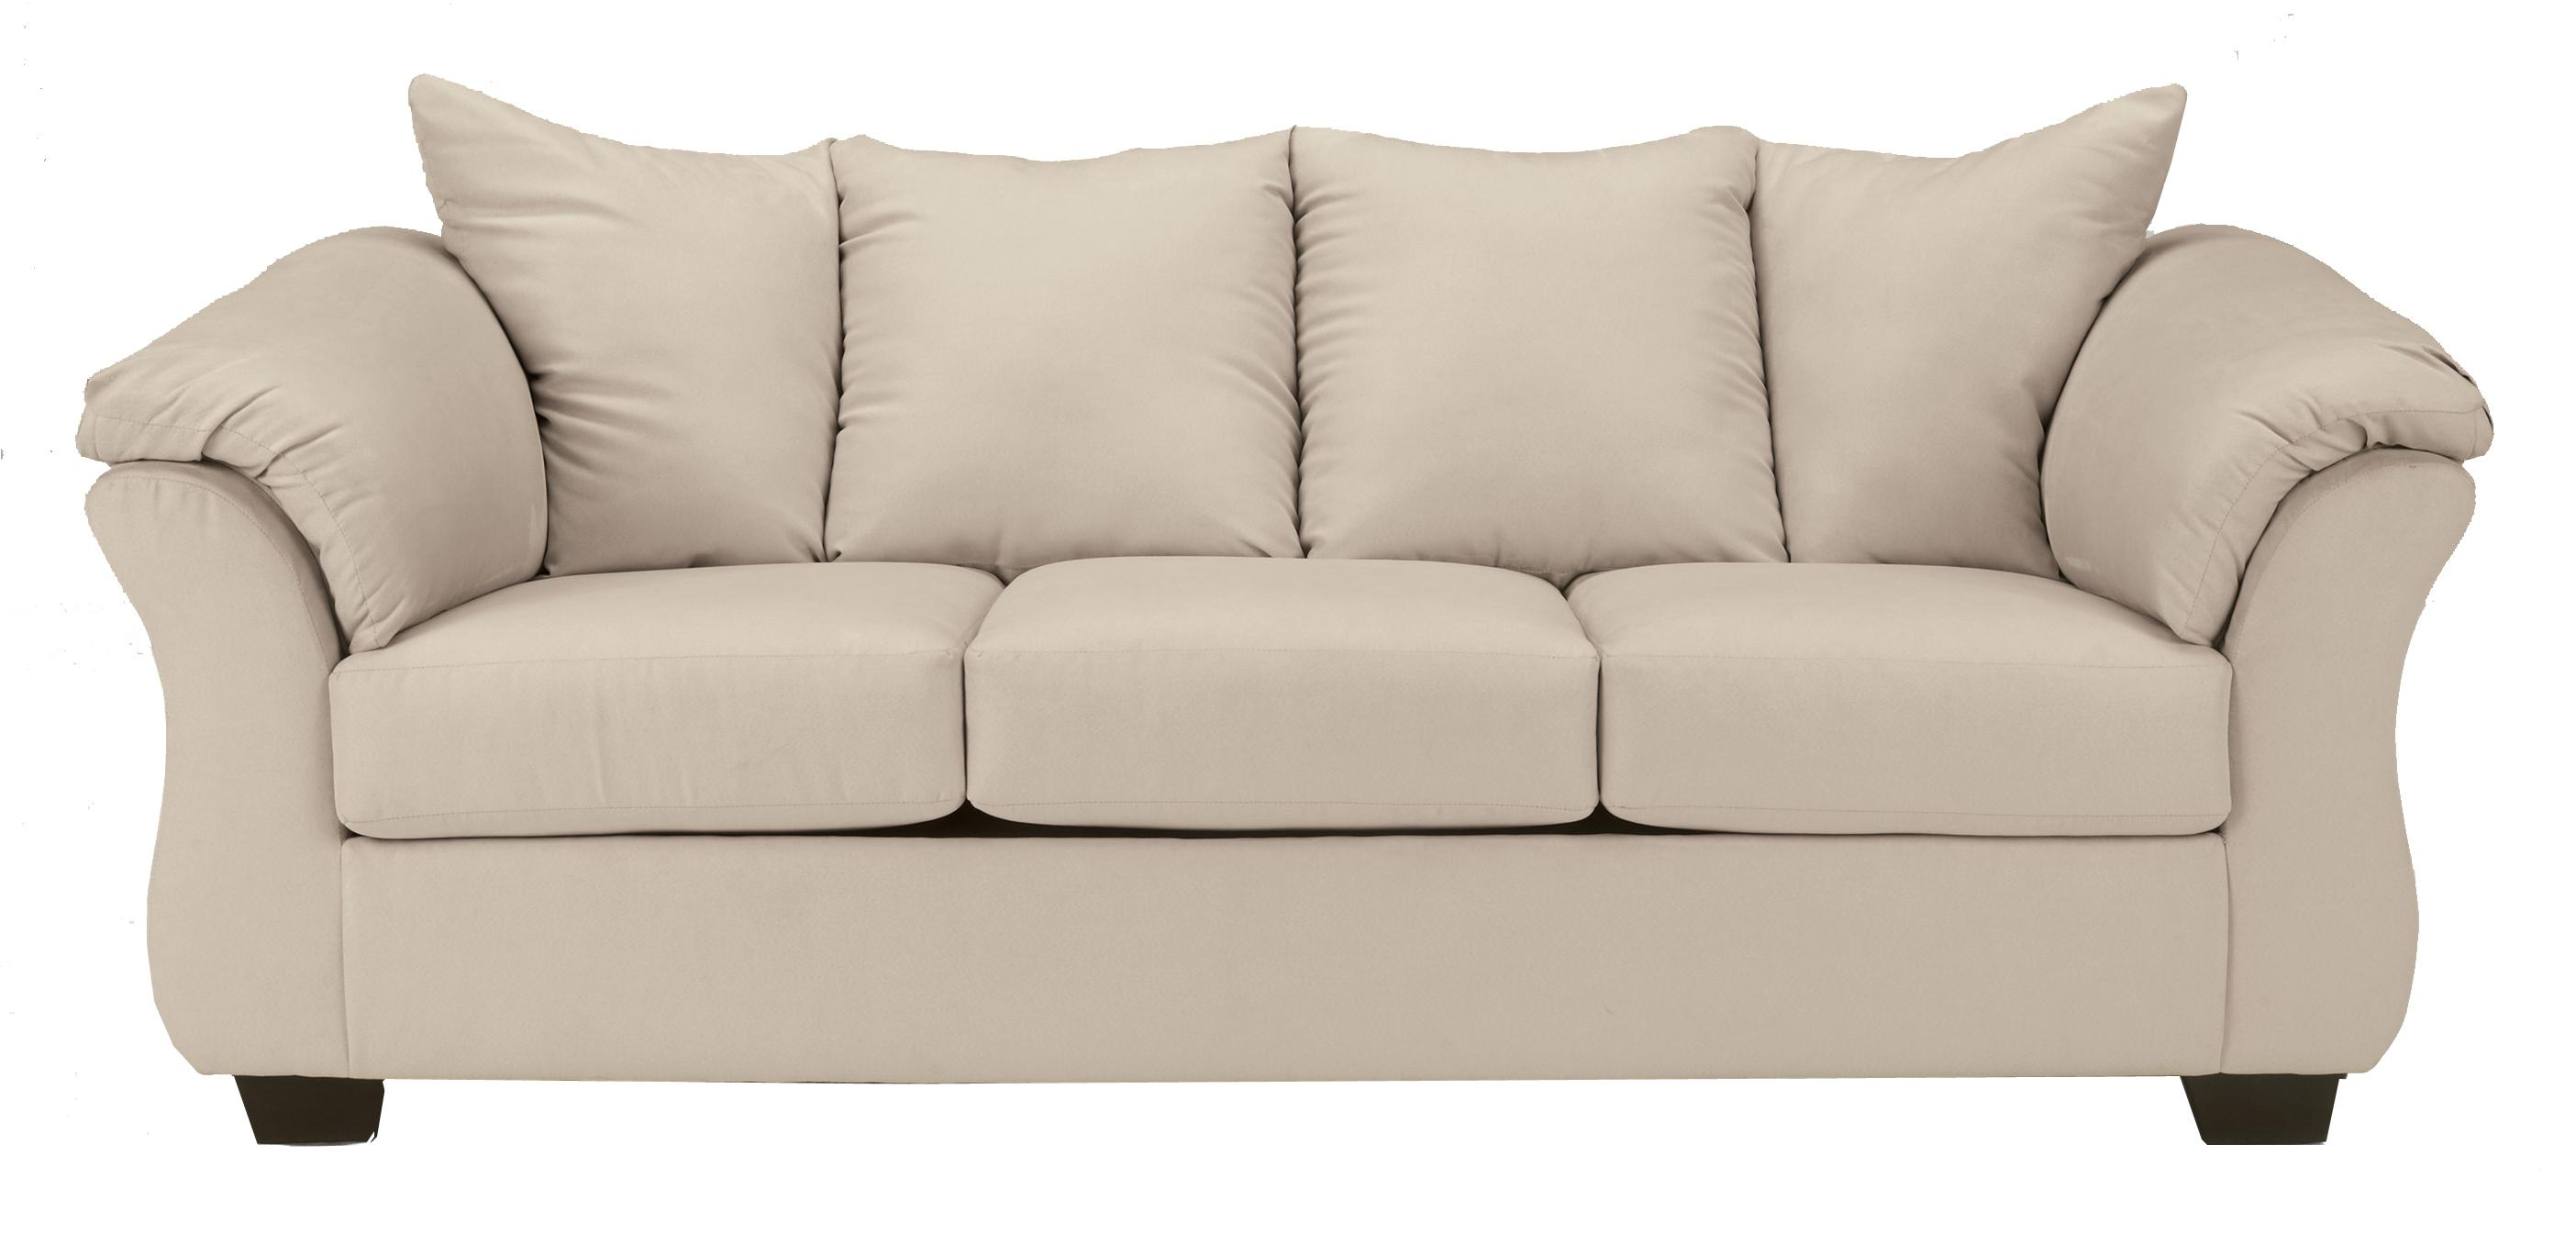 Signature Design by Ashley Darcy - Stone Stationary Sofa - Item Number: 7500038